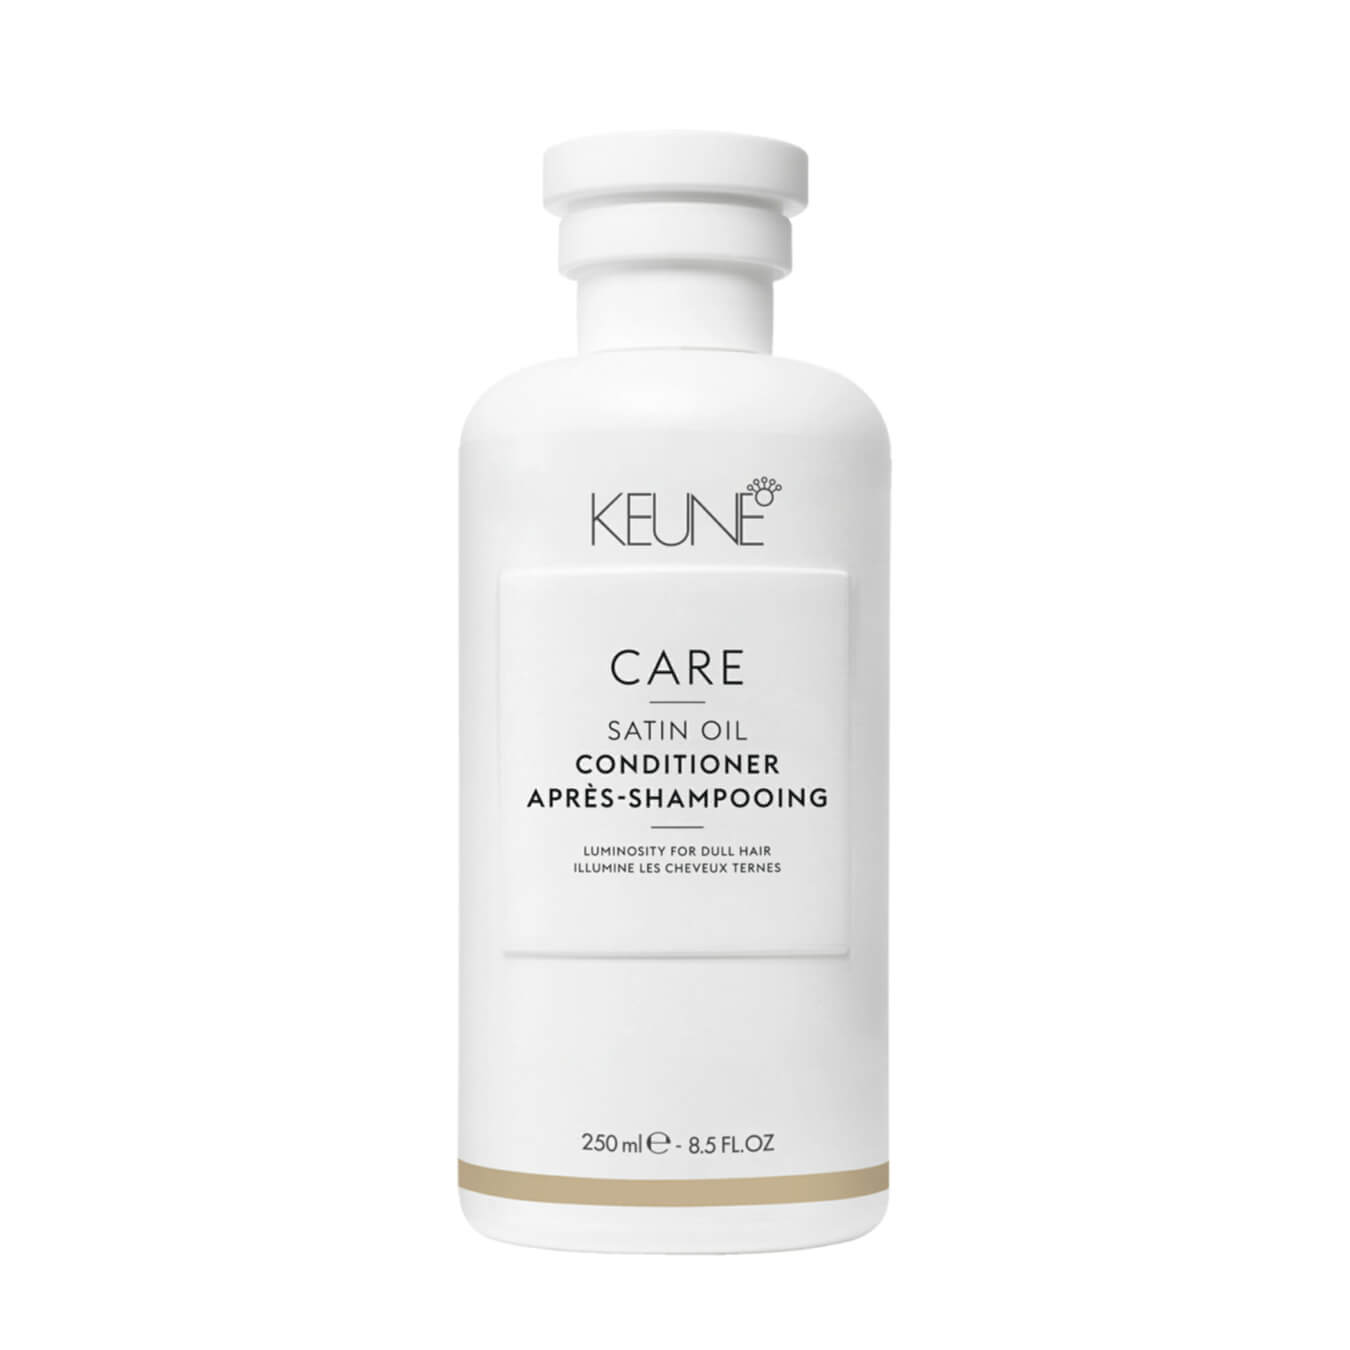 Koop Keune Care Satin Oil Conditioner 250ml